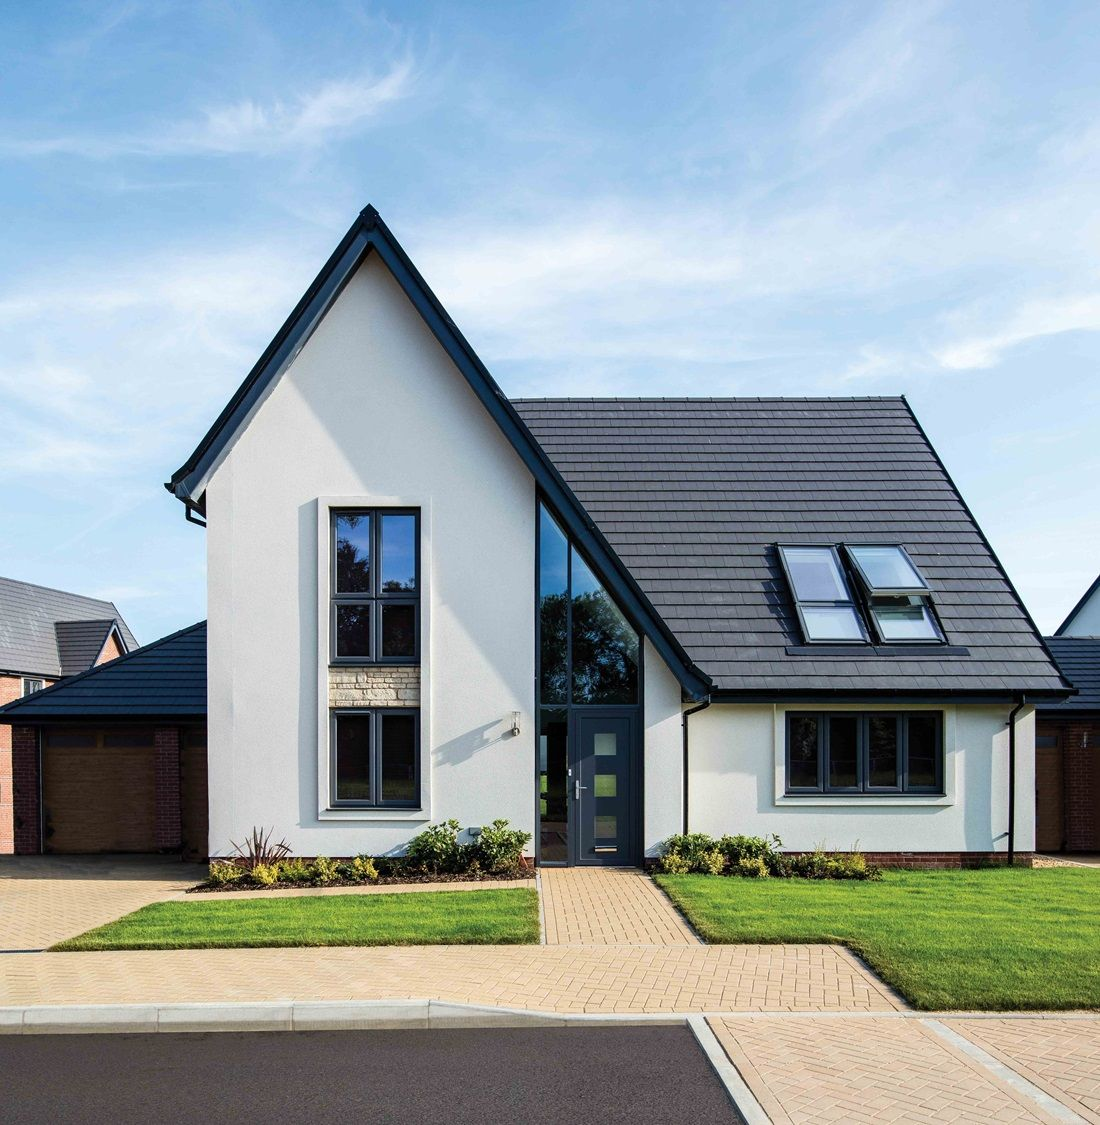 New Homes Bungalows: New Homes In Daventry